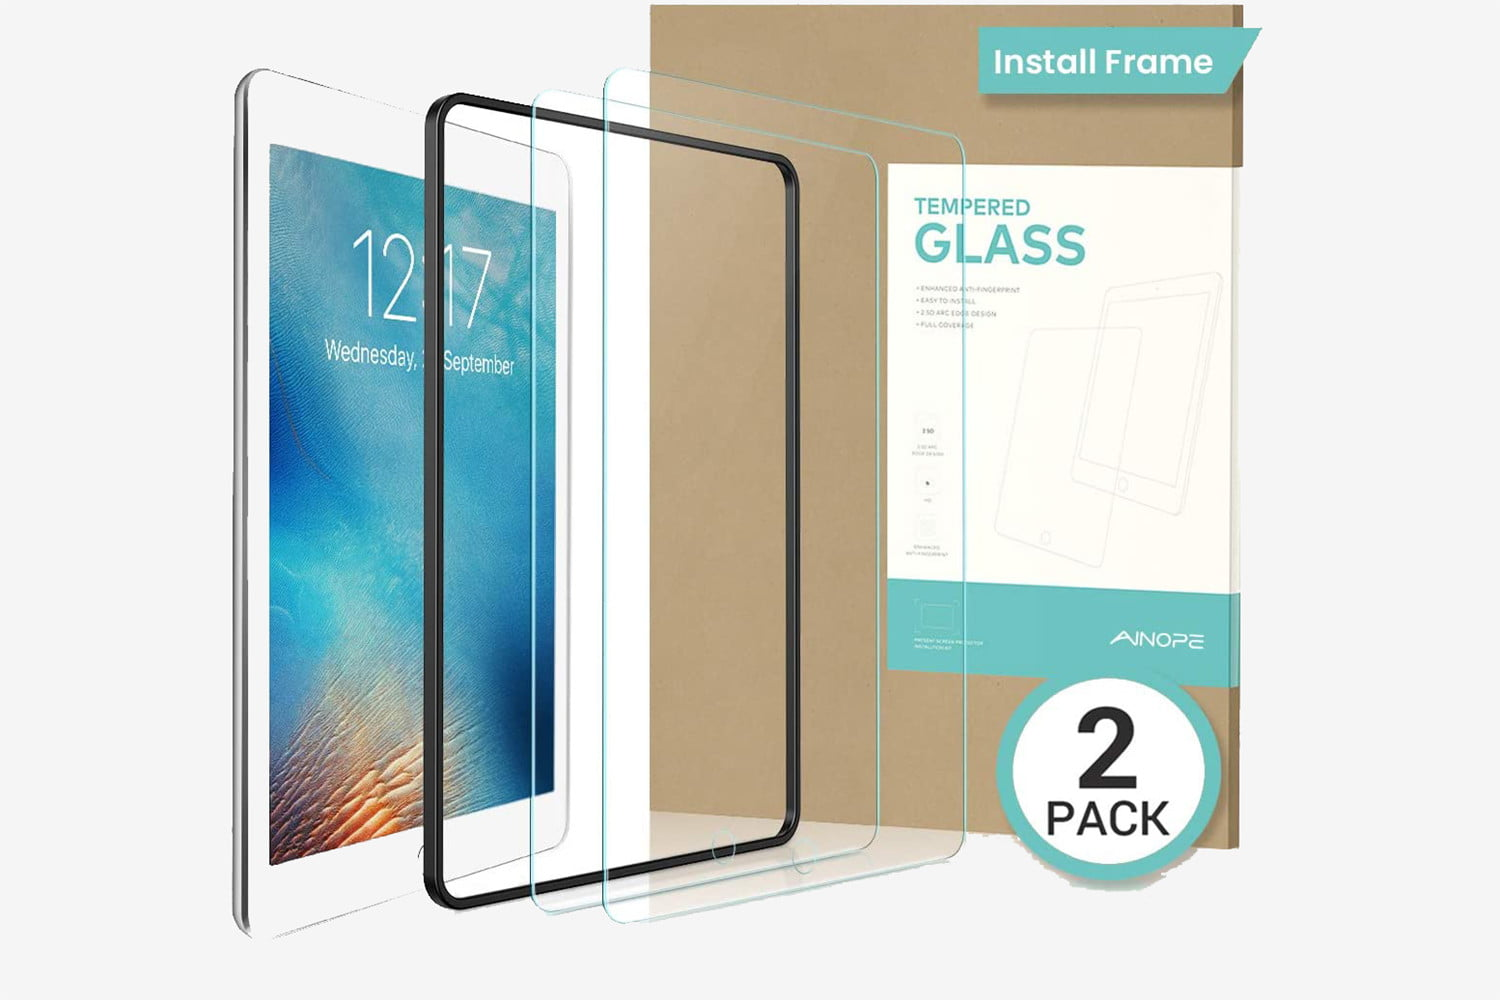 tempered glass frame